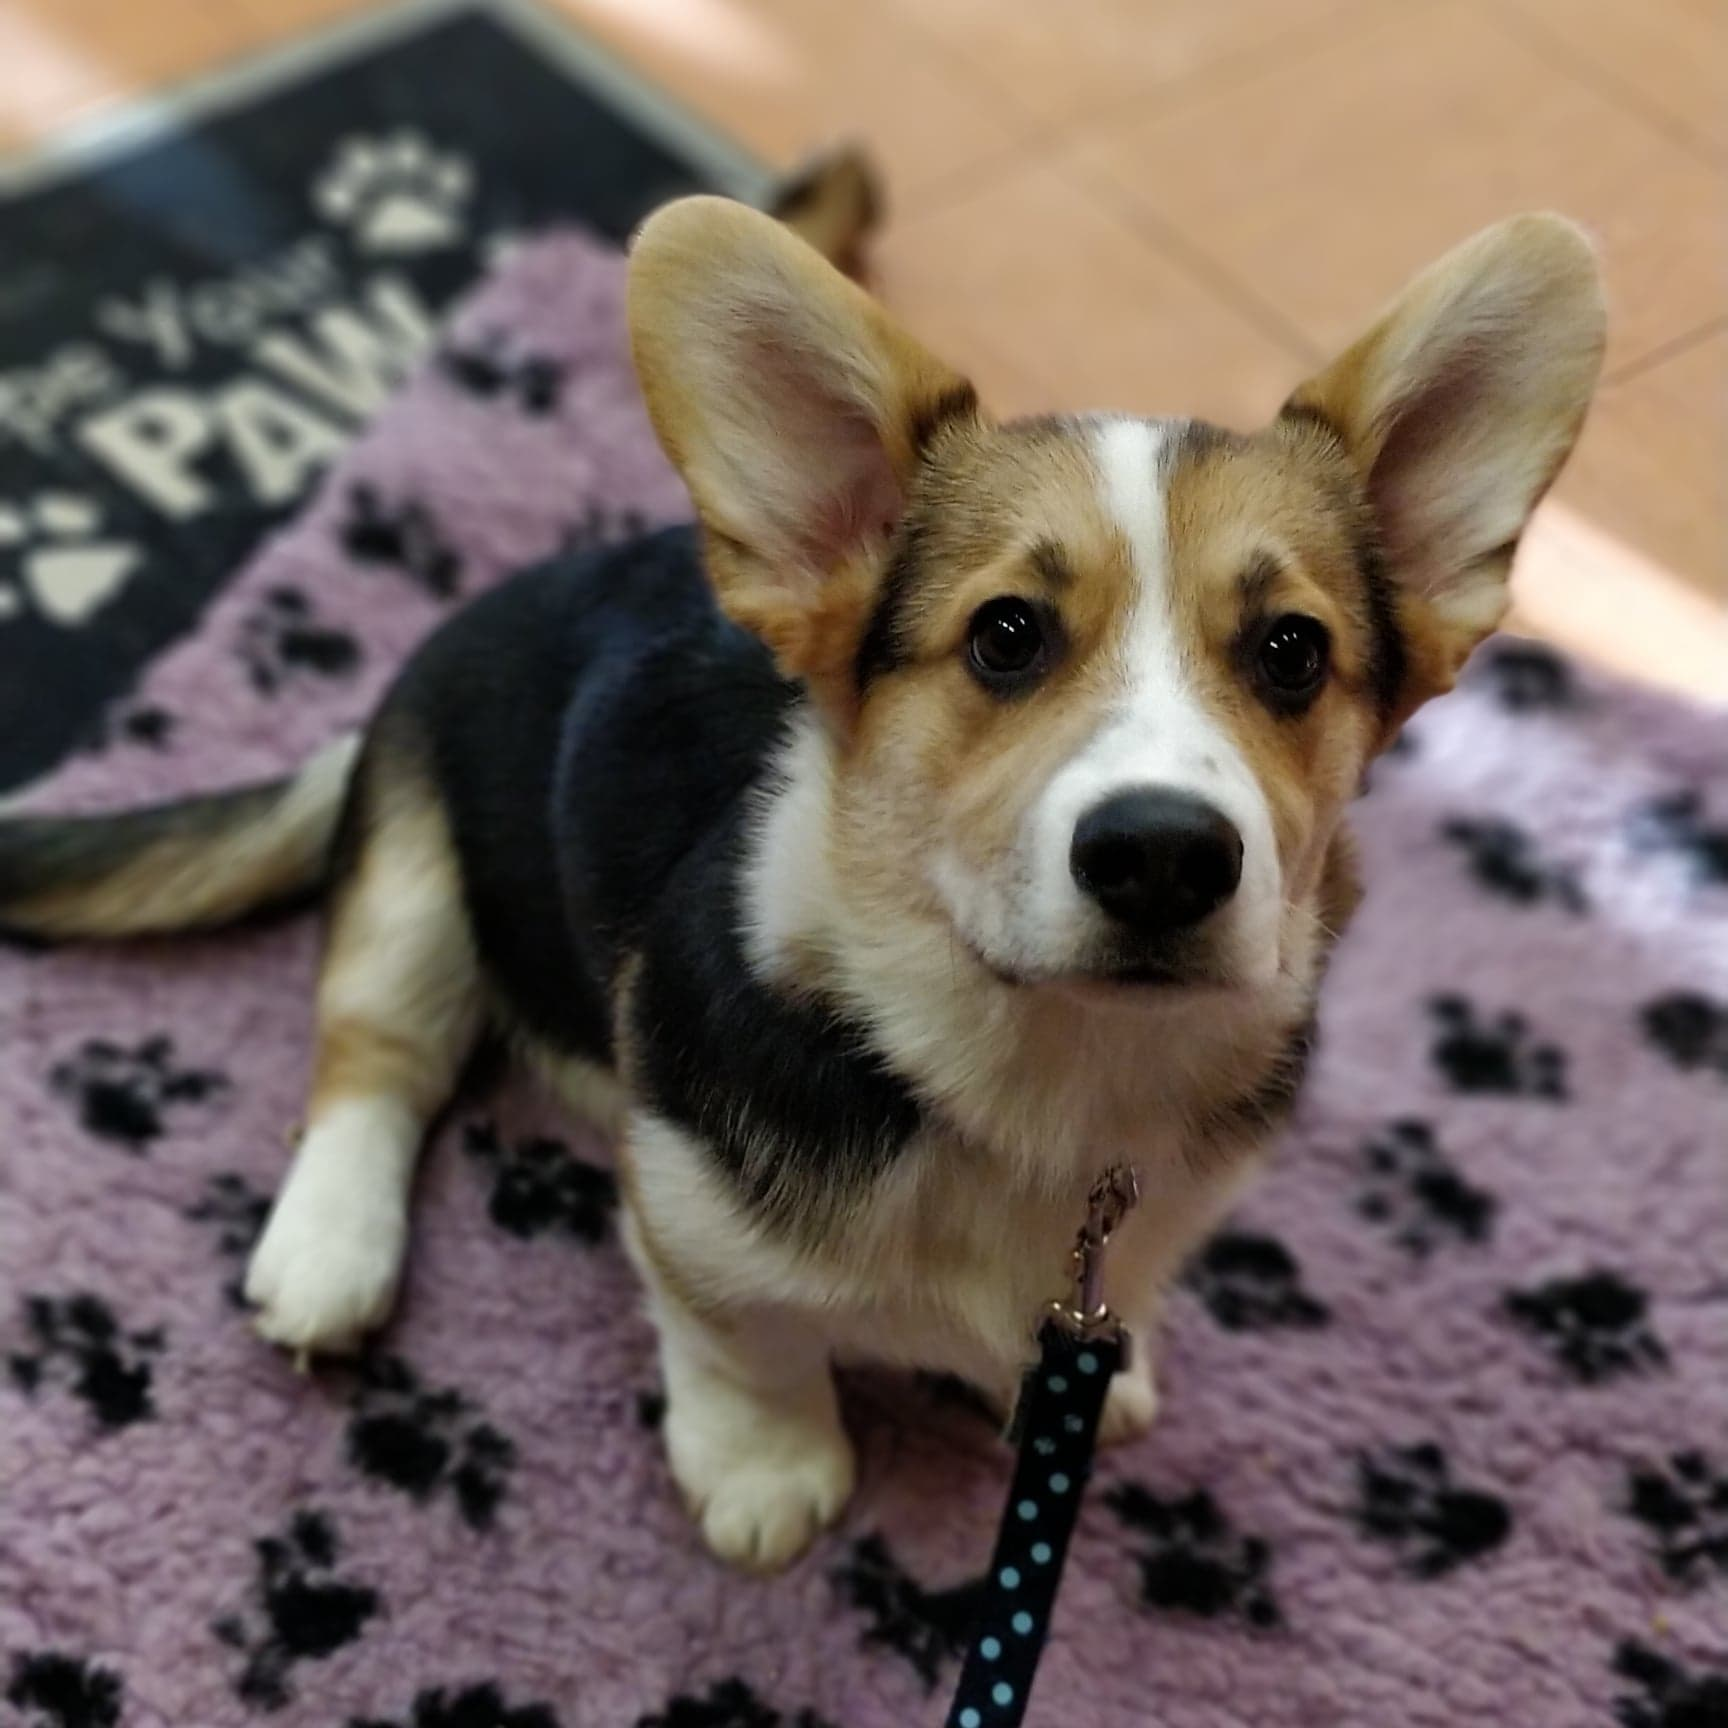 Corgi puppy doing dog training and learning to sit on command